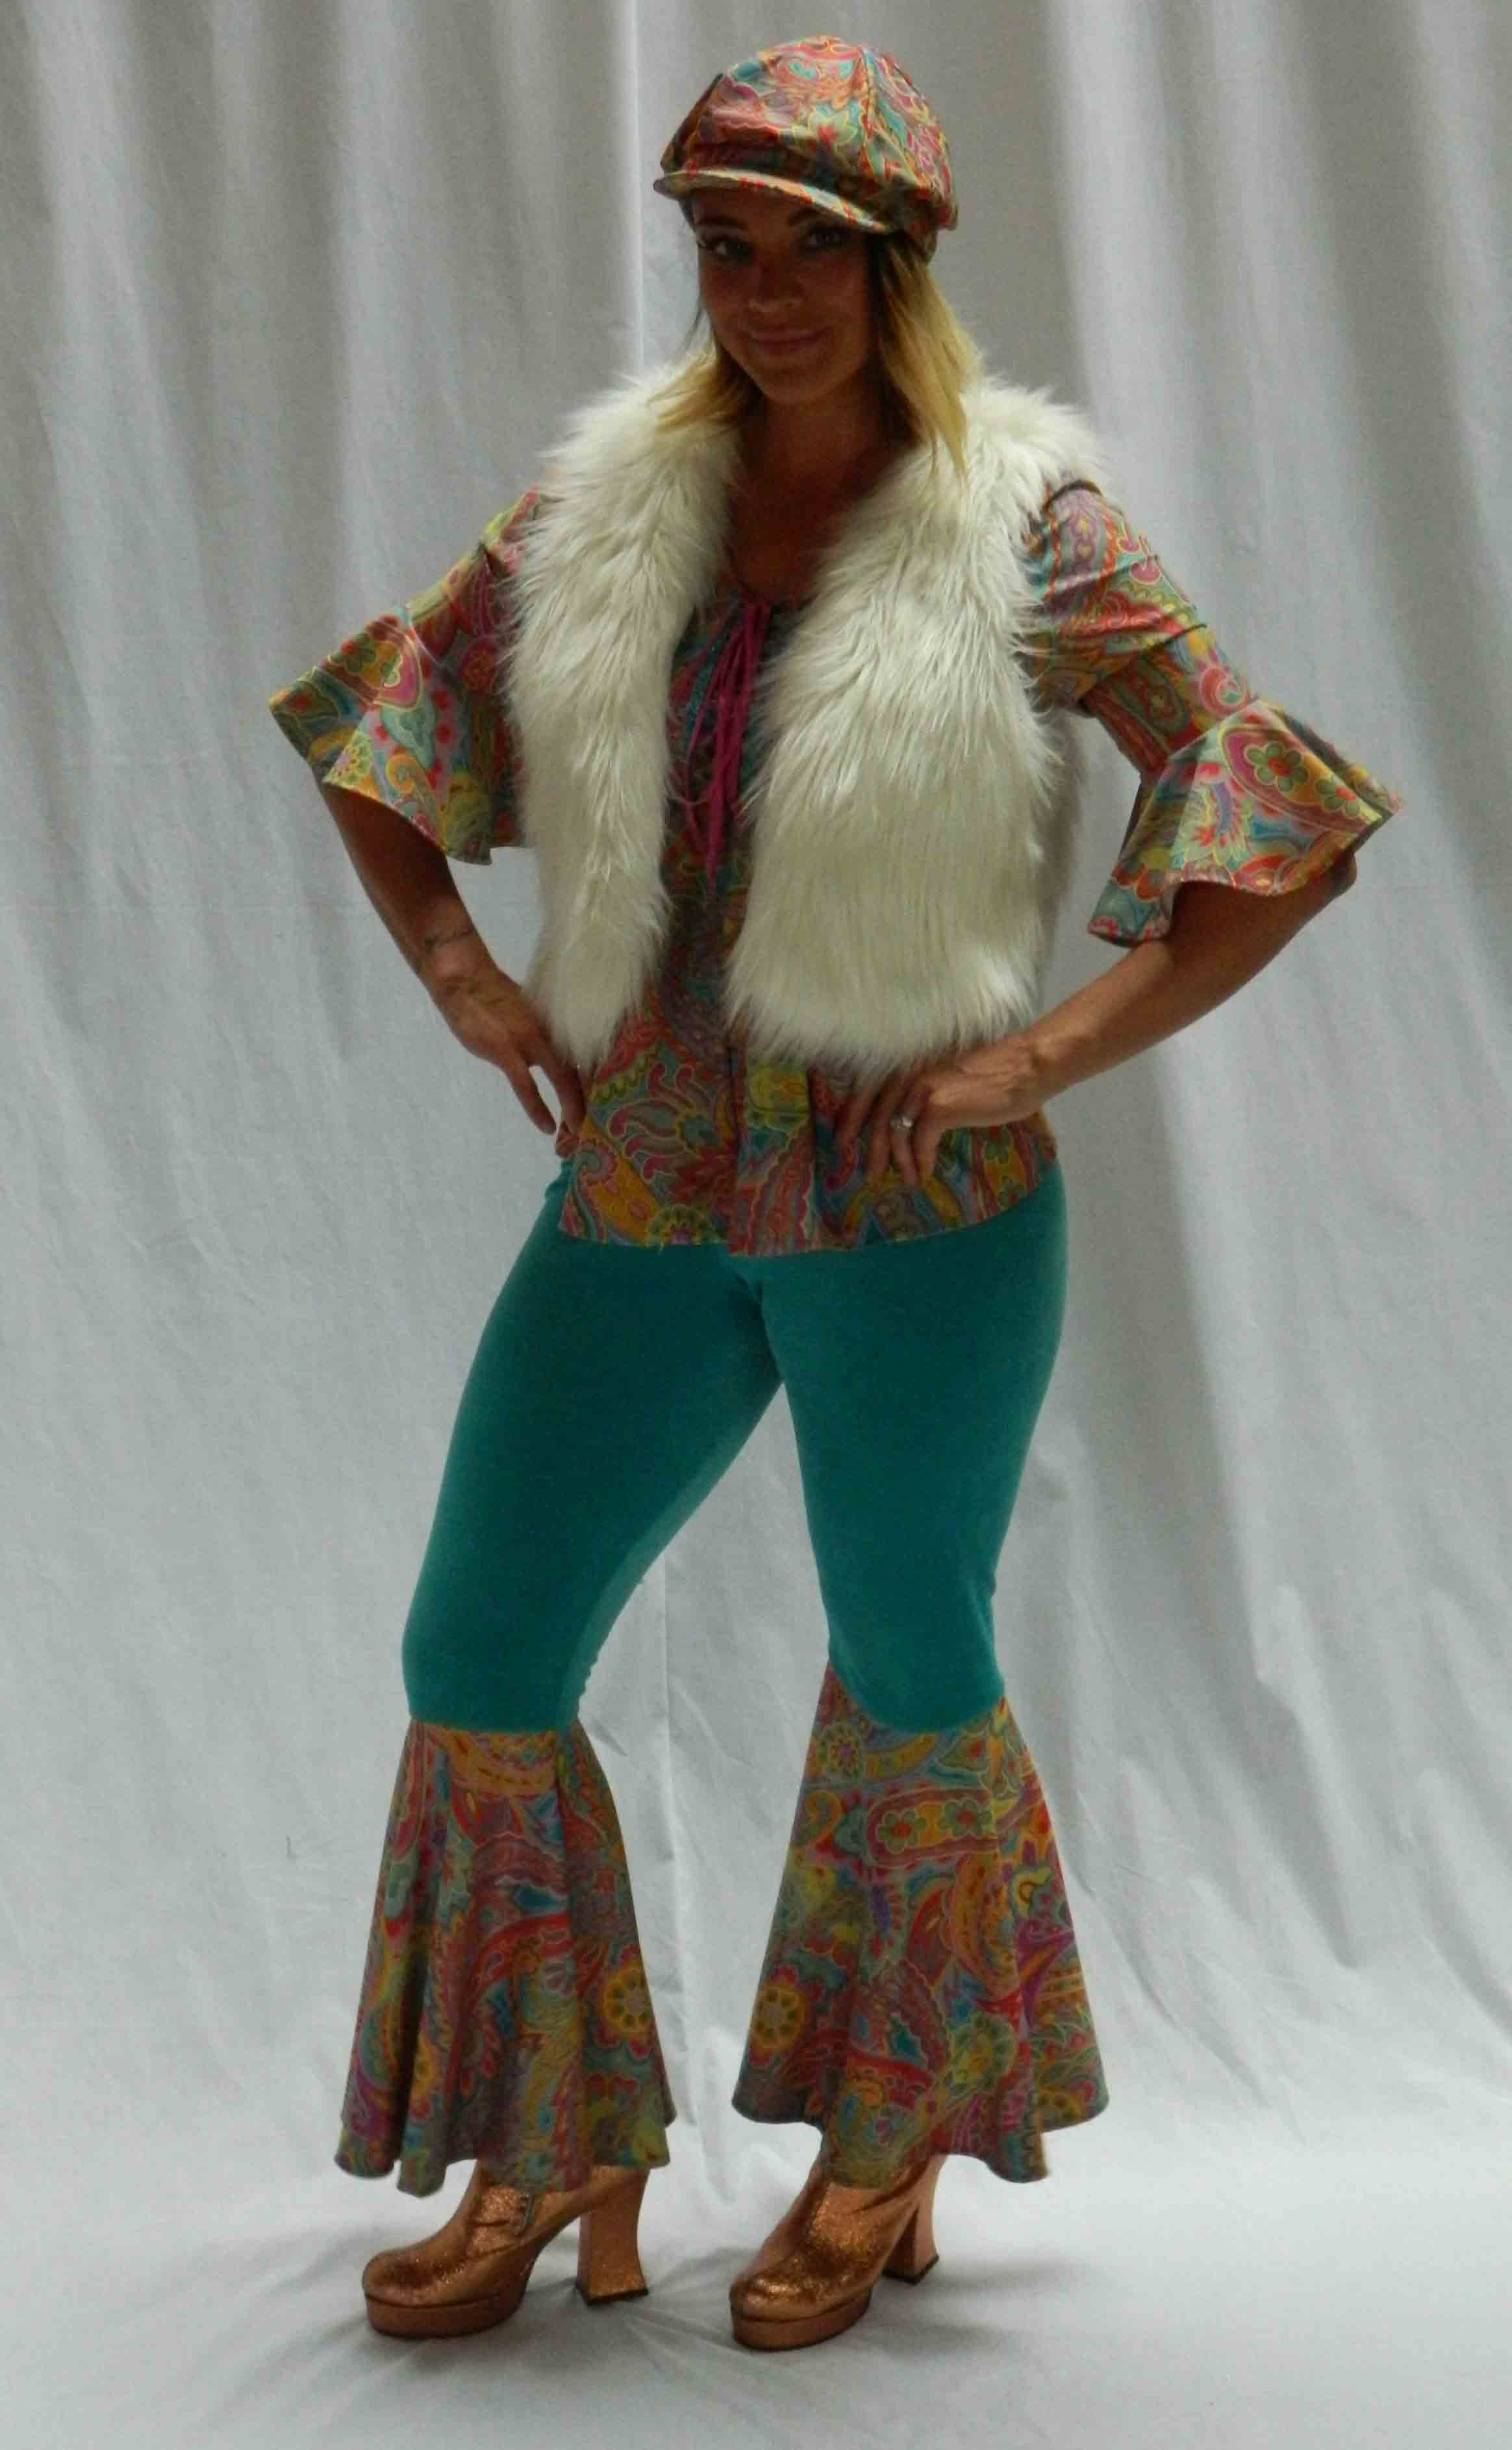 70s Girl 03 SXSV-F-032